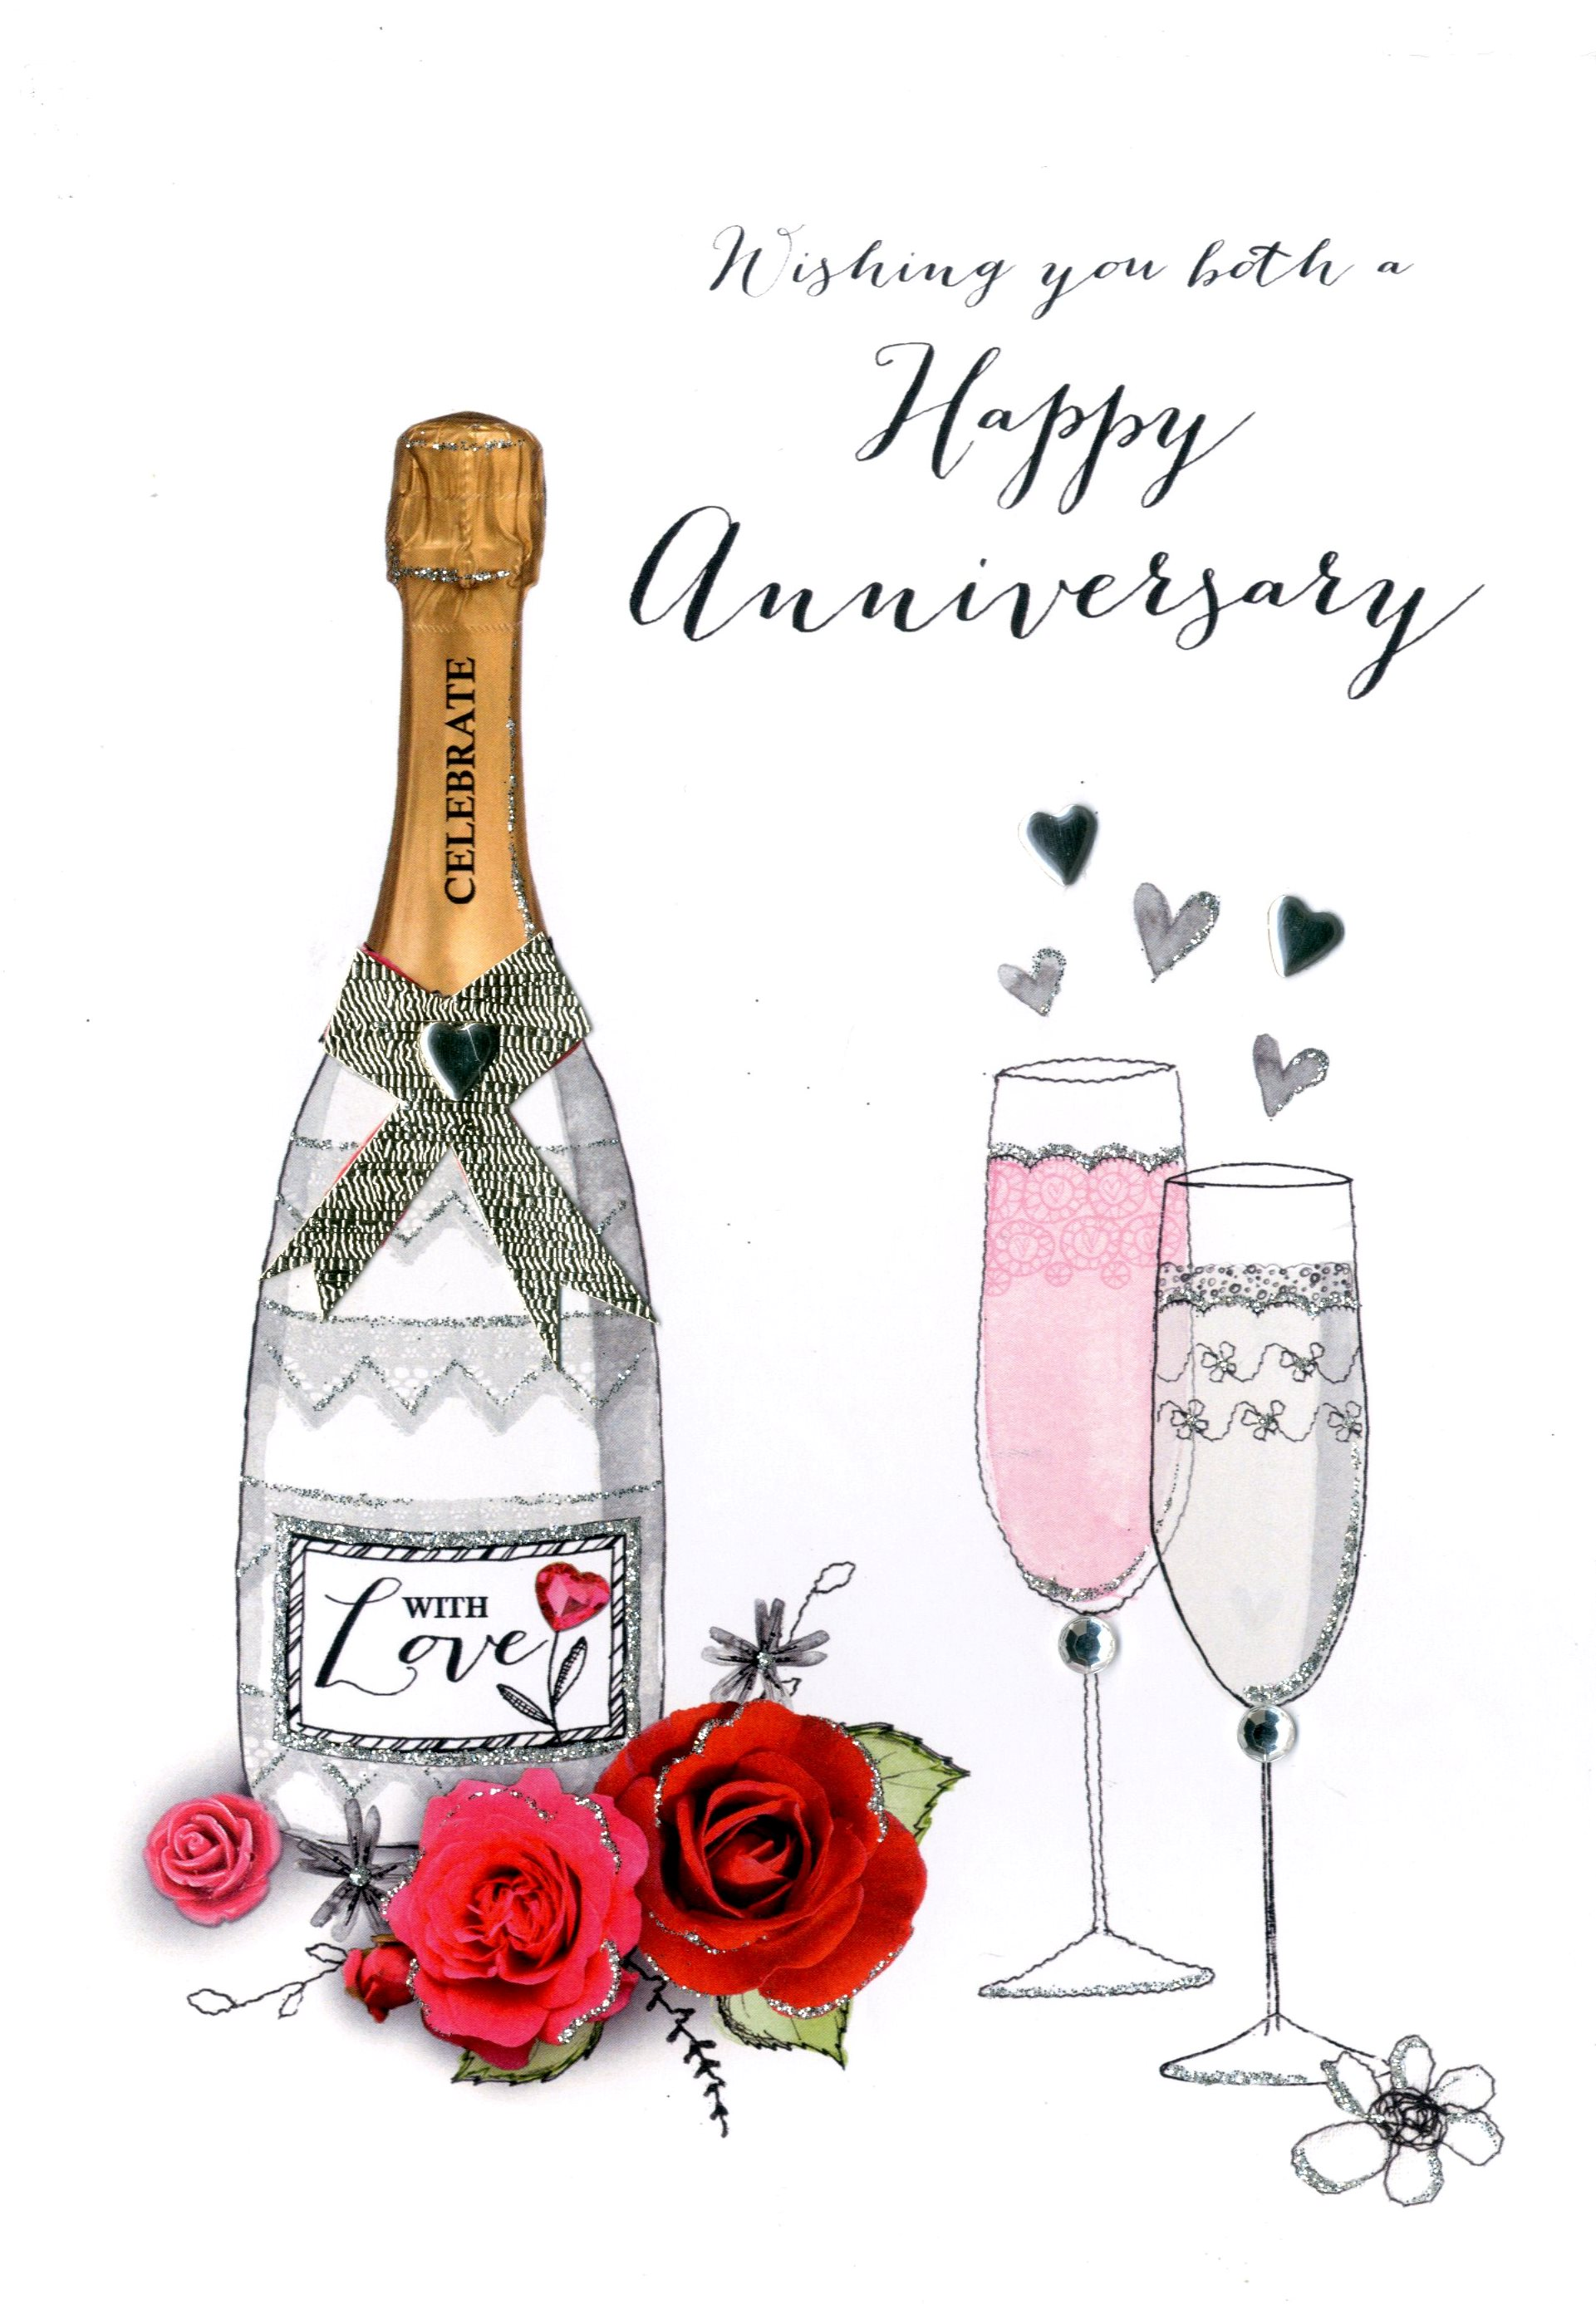 wishing you both happy anniversary greeting card cards